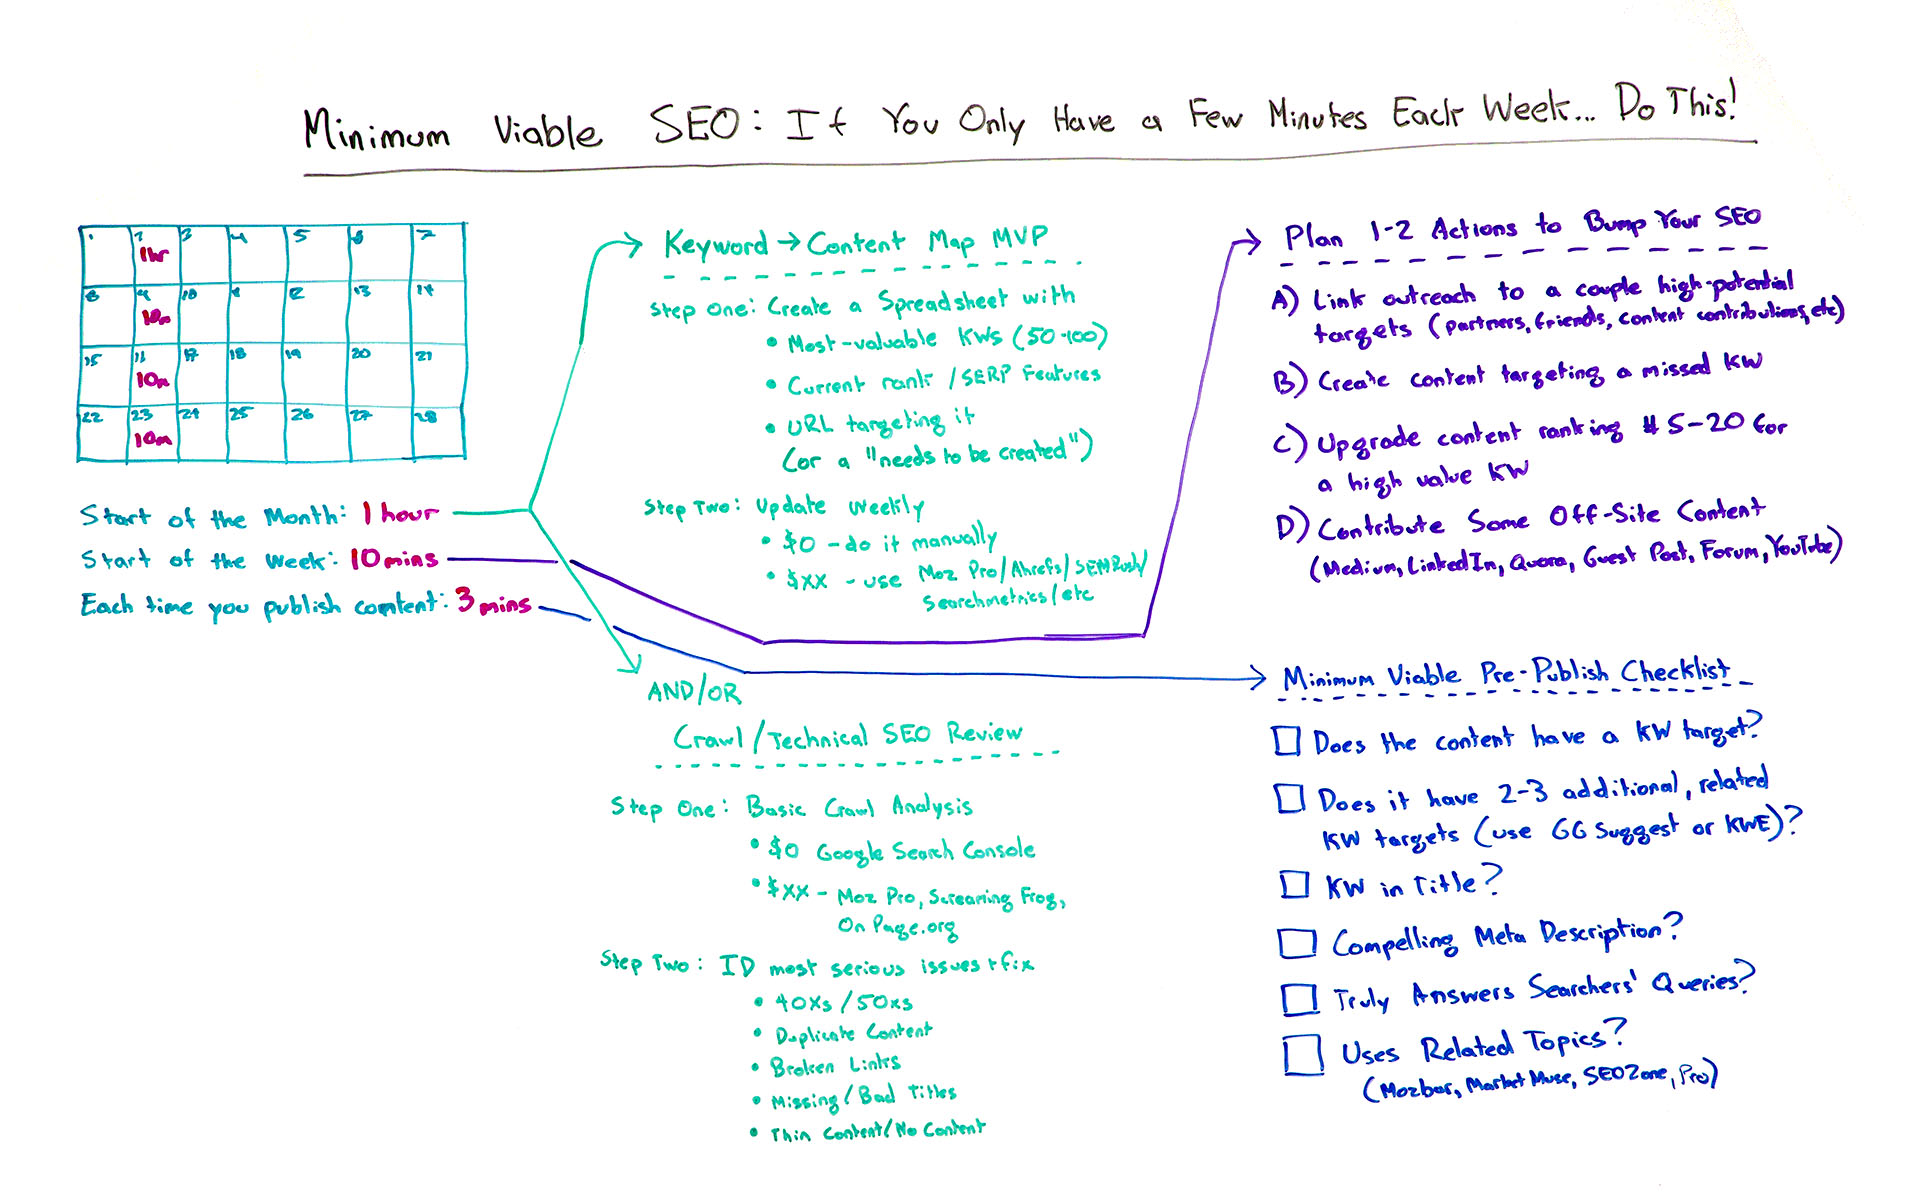 https://moz.com/blog/minimum-viable-seo-whiteboard-friday